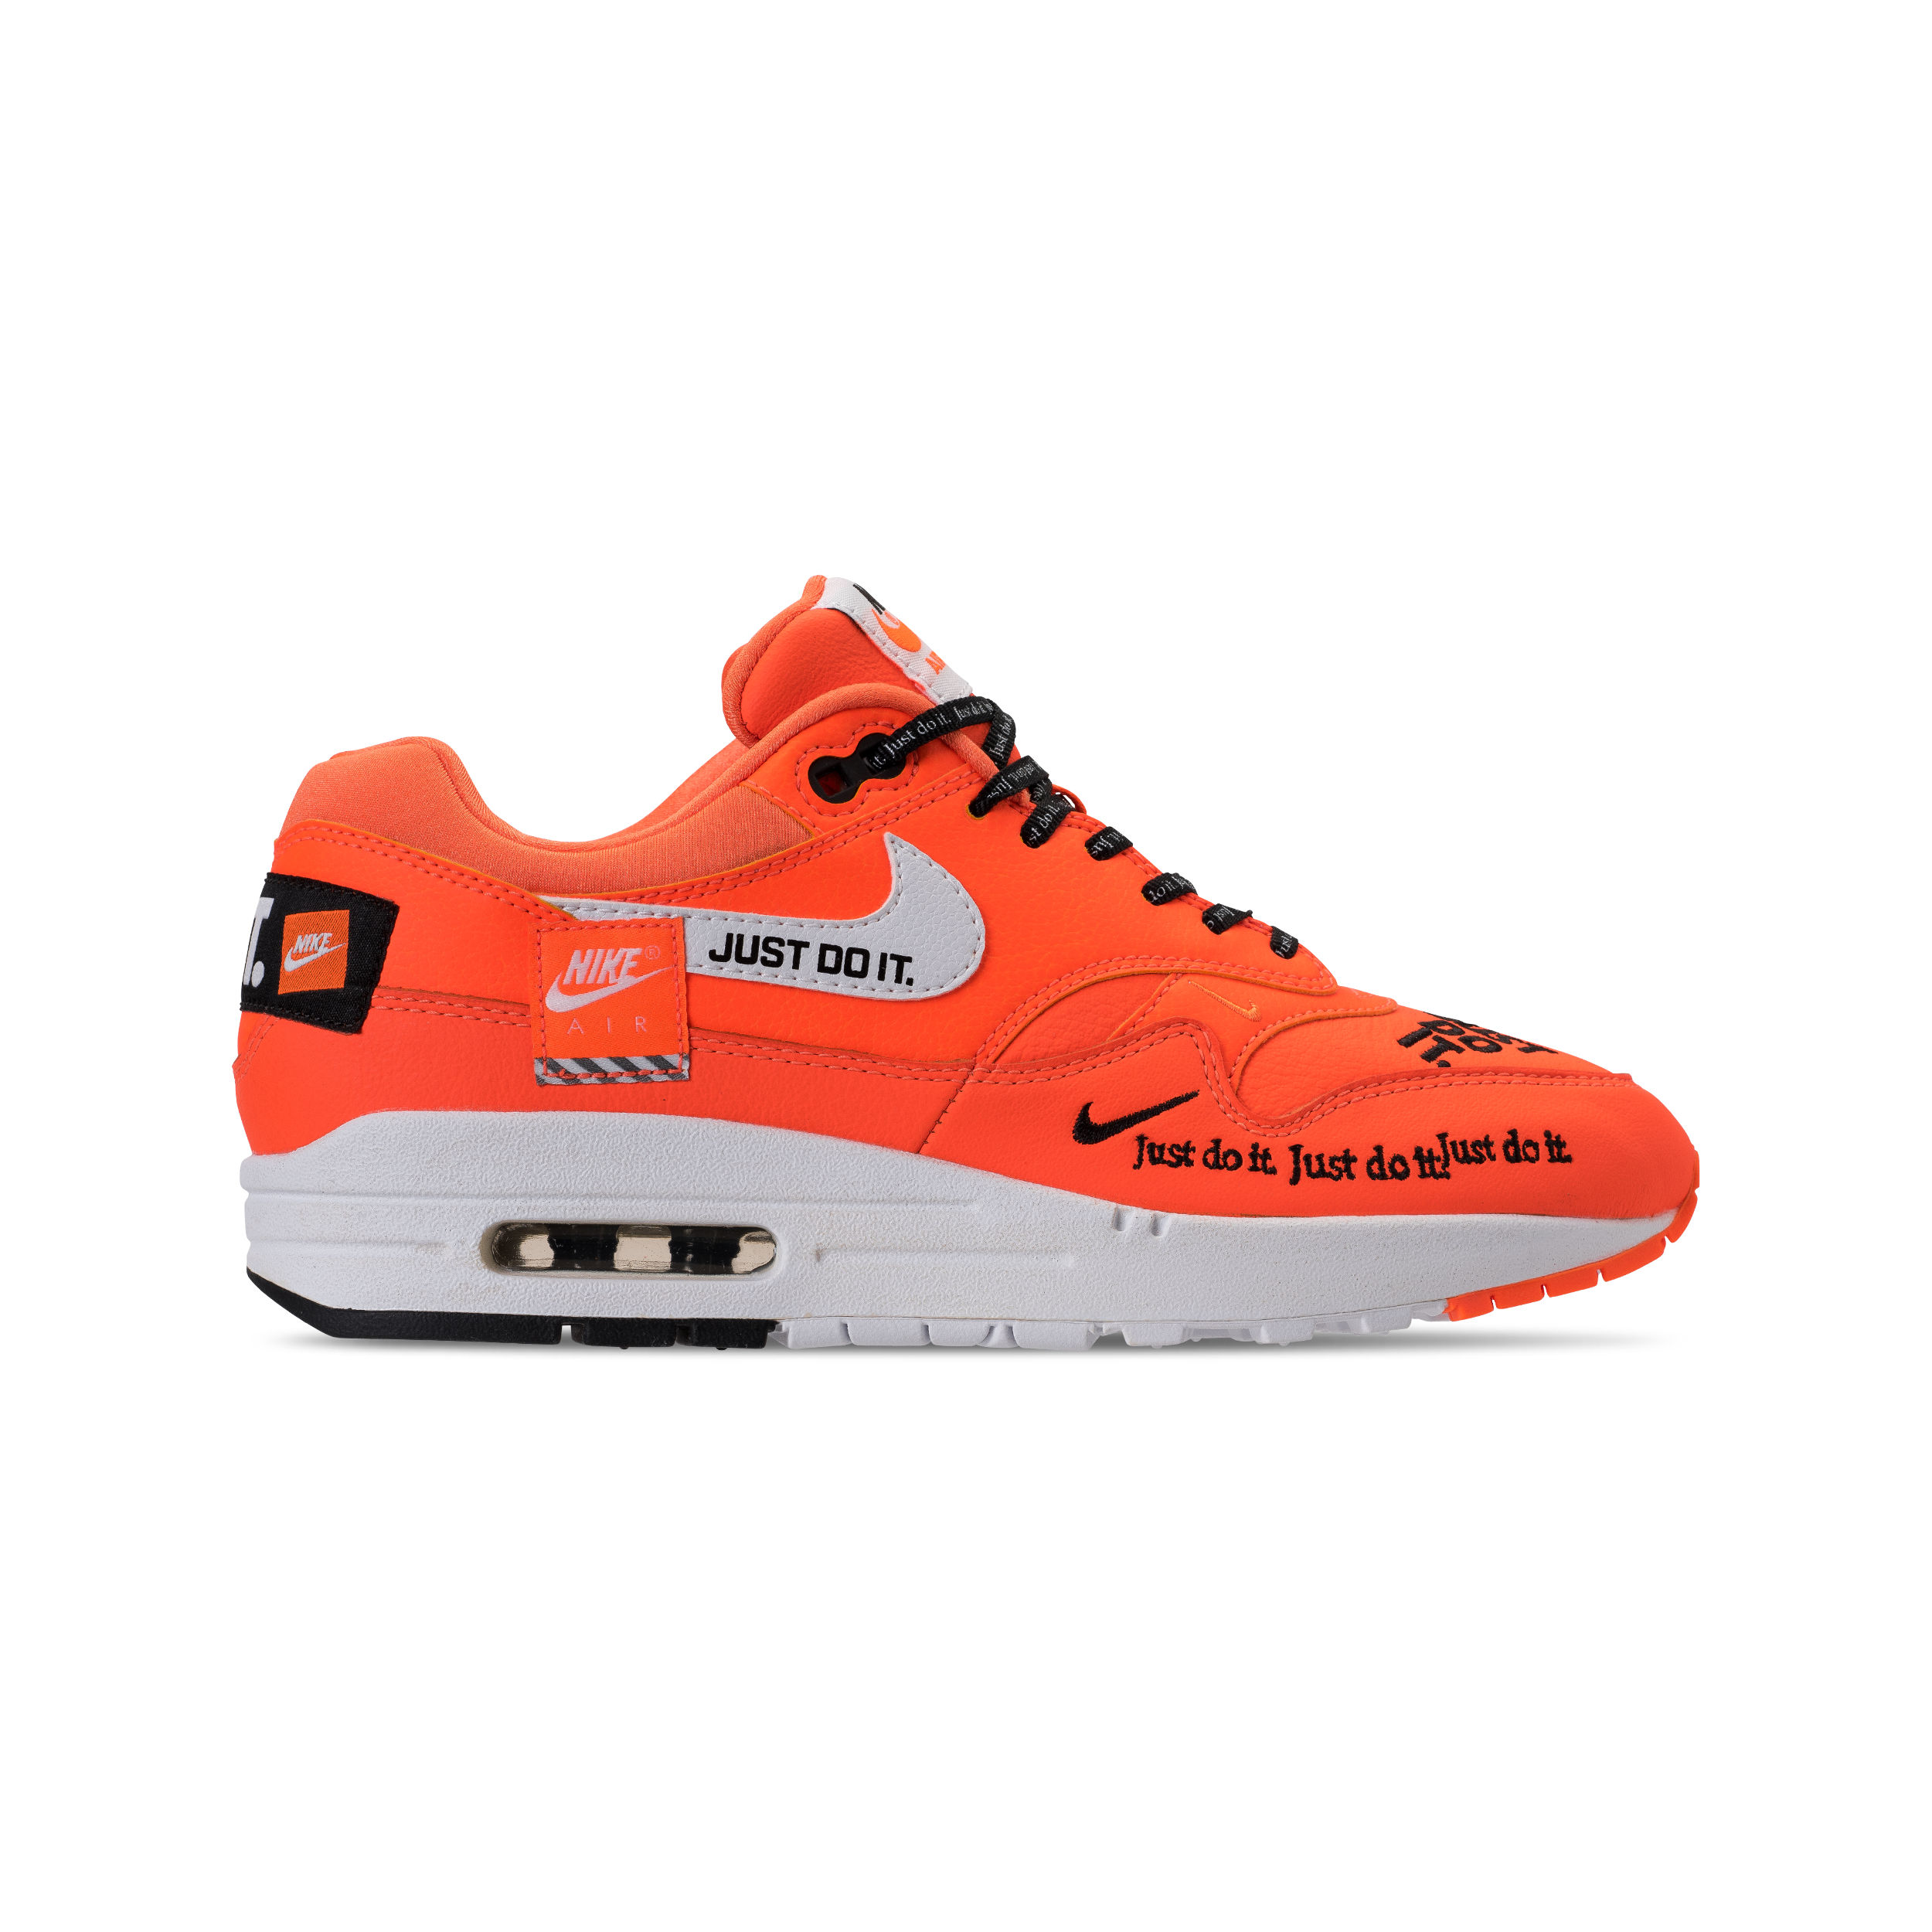 b42960d7a03 Next. NIKE WMNS AIR MAX 1 WHITE   BLACK-TOTAL ORANGE 3. May28